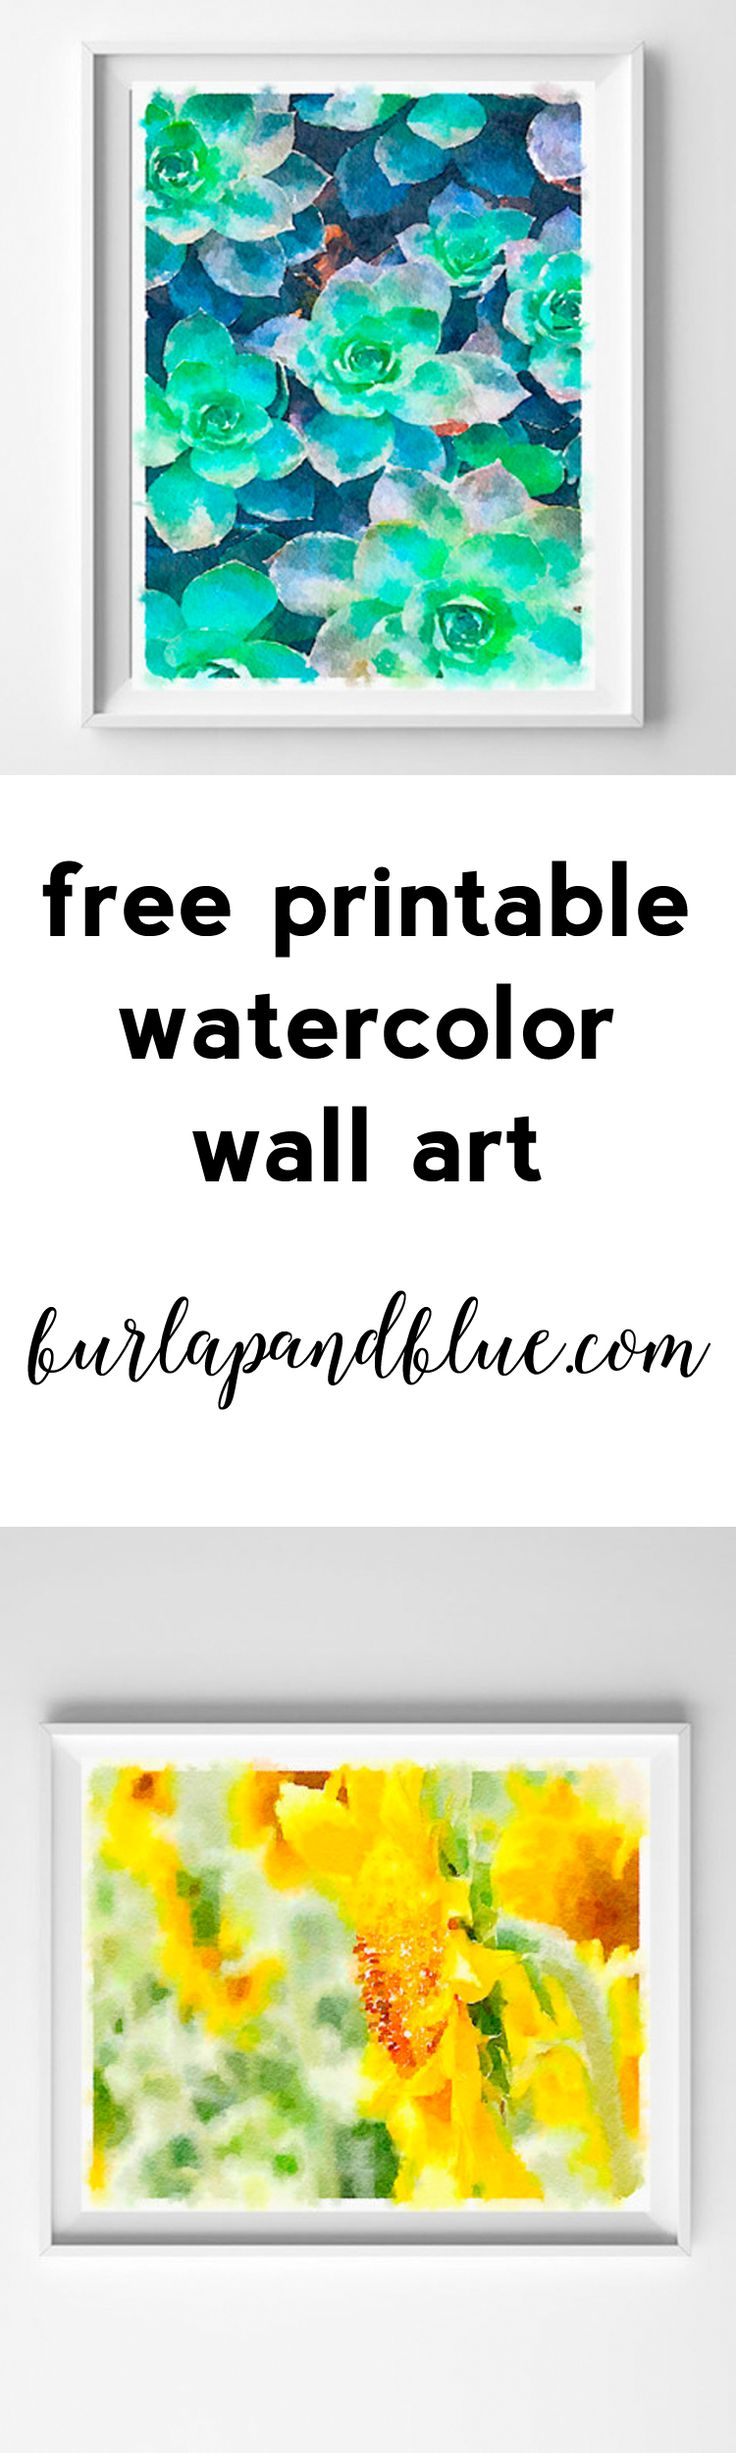 25 best wall art designs ideas on pinterest apartment wall art 25 best wall art designs ideas on pinterest apartment wall art diy wall art and decorative wall paintings